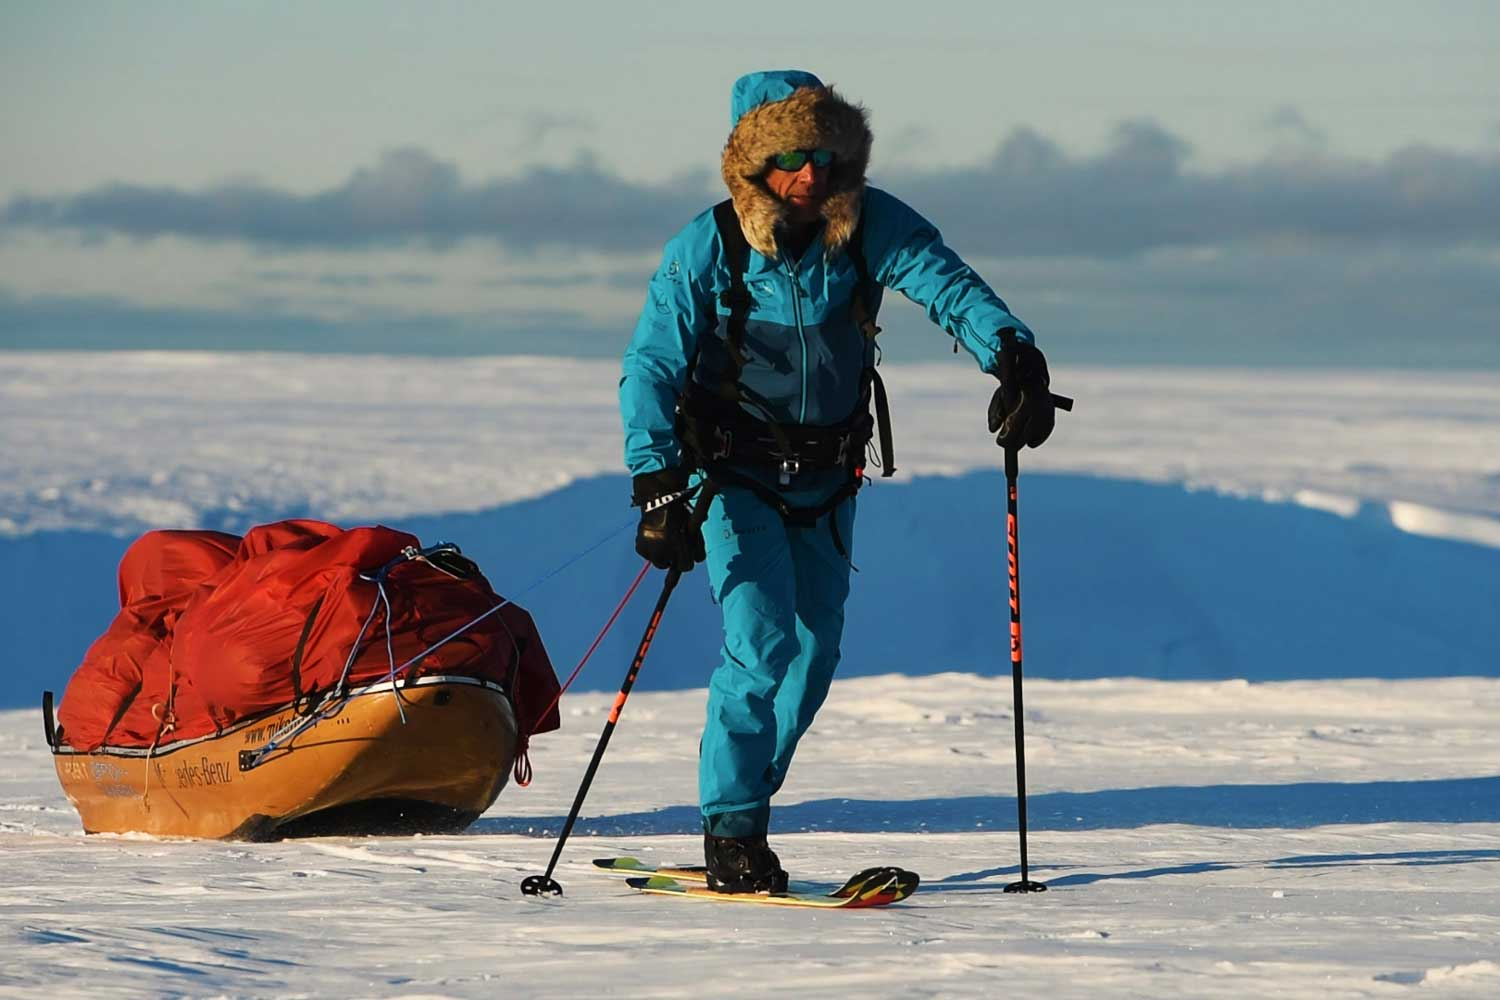 Mike Horn crossed the South Pole under his own power, with the aid of skis, paraglides and kite-surfs